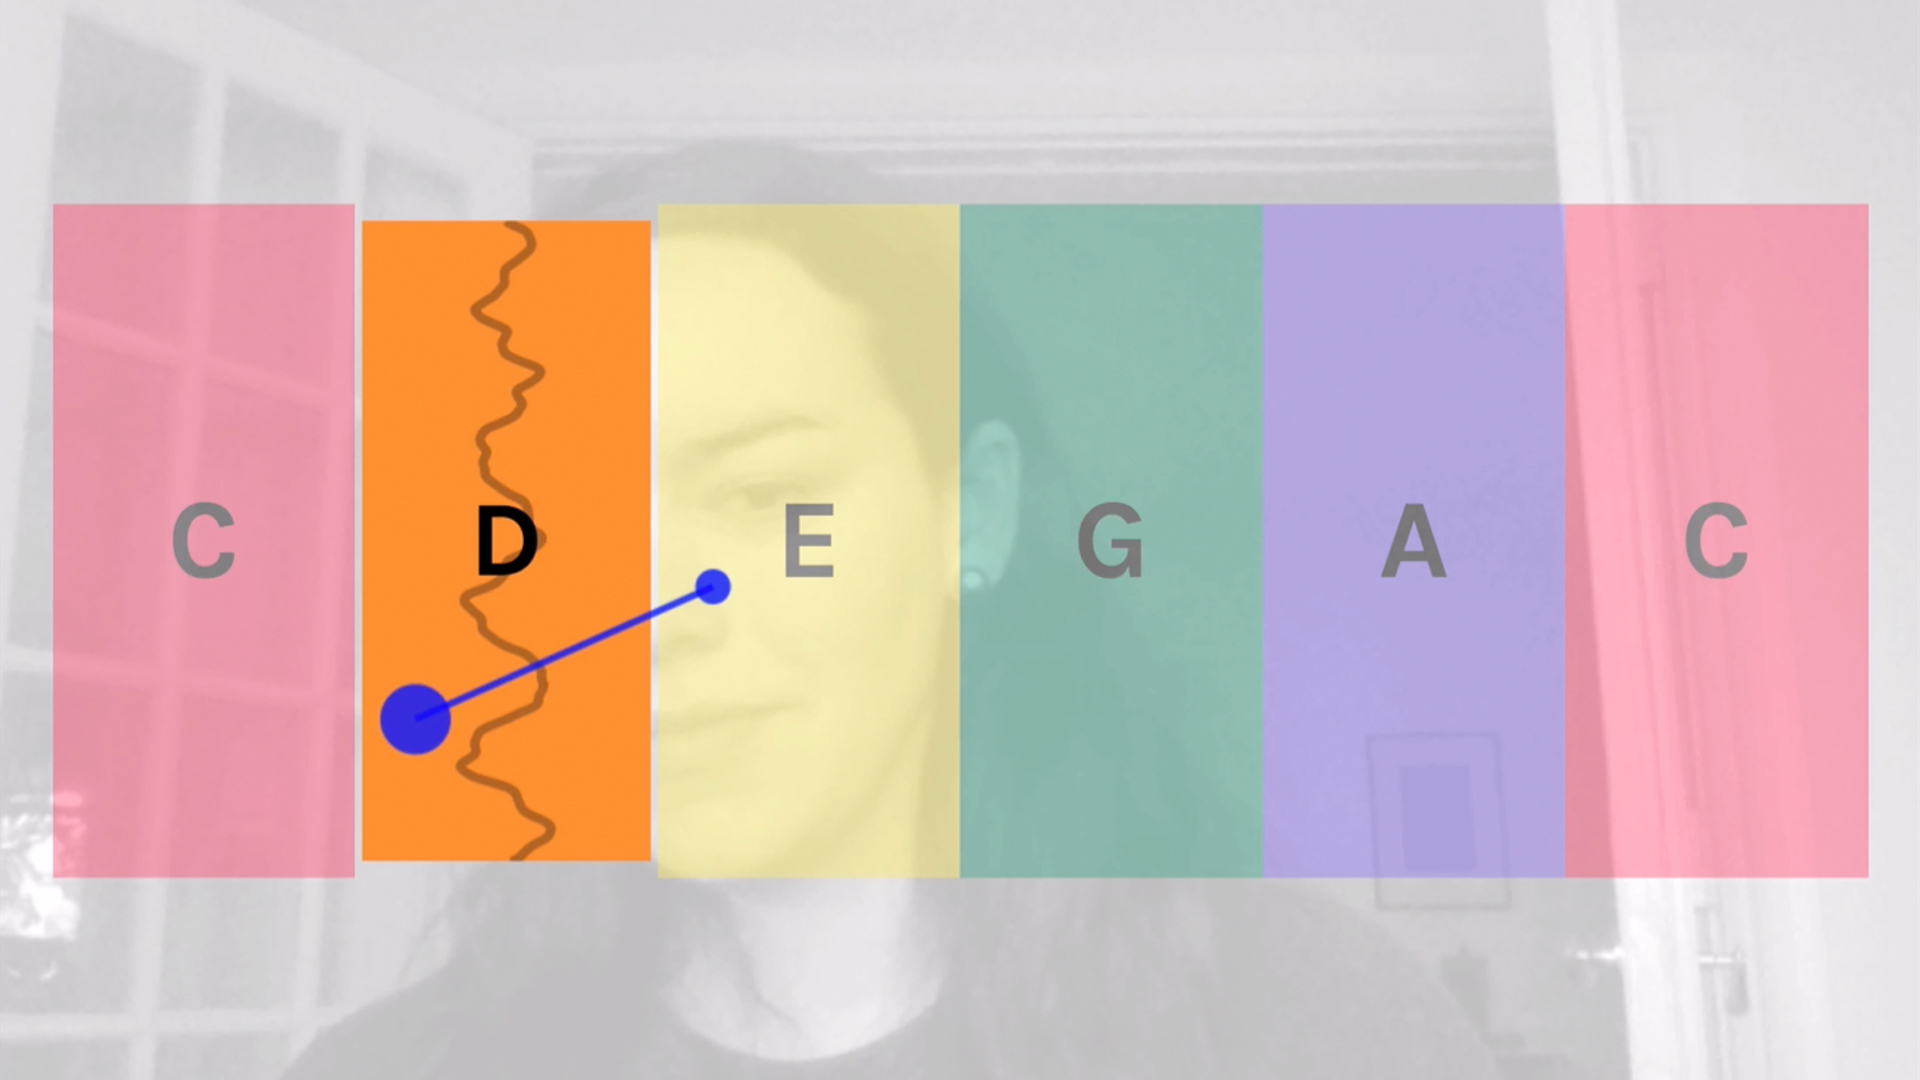 Black and white web camera feed of woman with a cursor mapped to her nose. Colorful musical keys with their notes displayed is overlaid